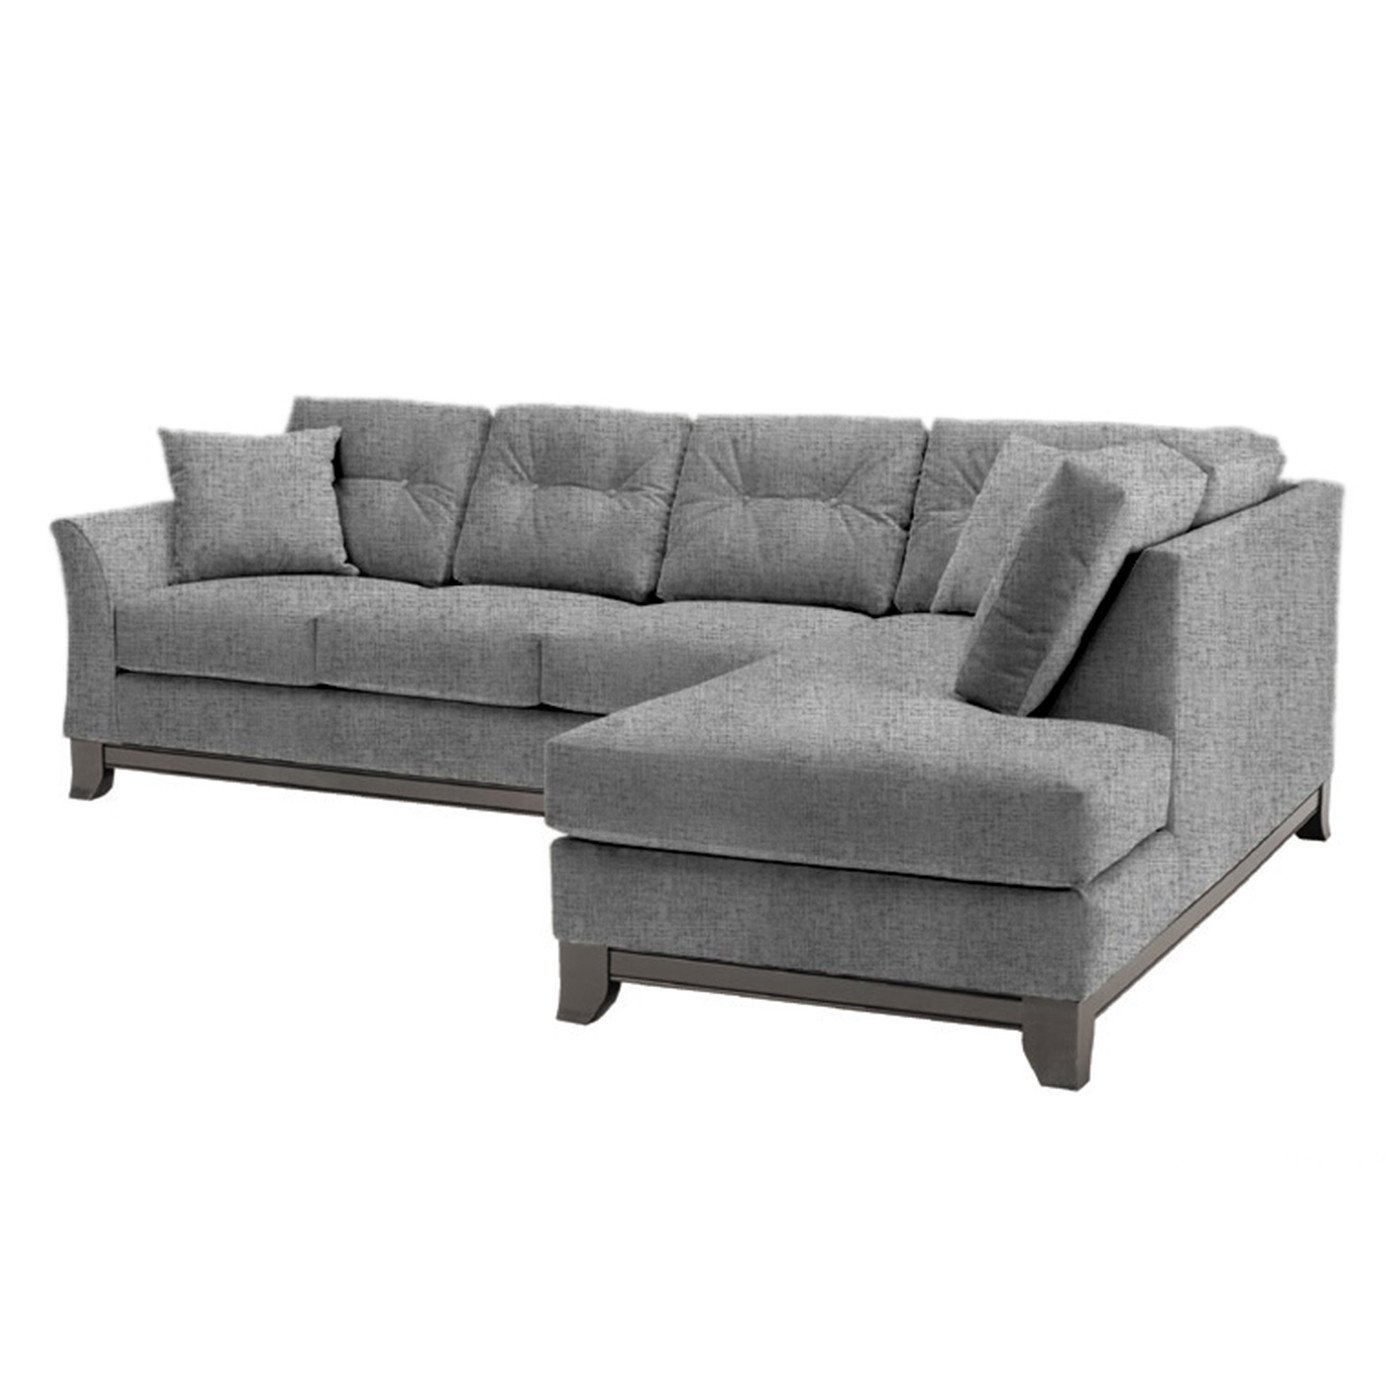 Amazon Com Marco 2 Piece Sectional Sofa Stone Laf Chaise On